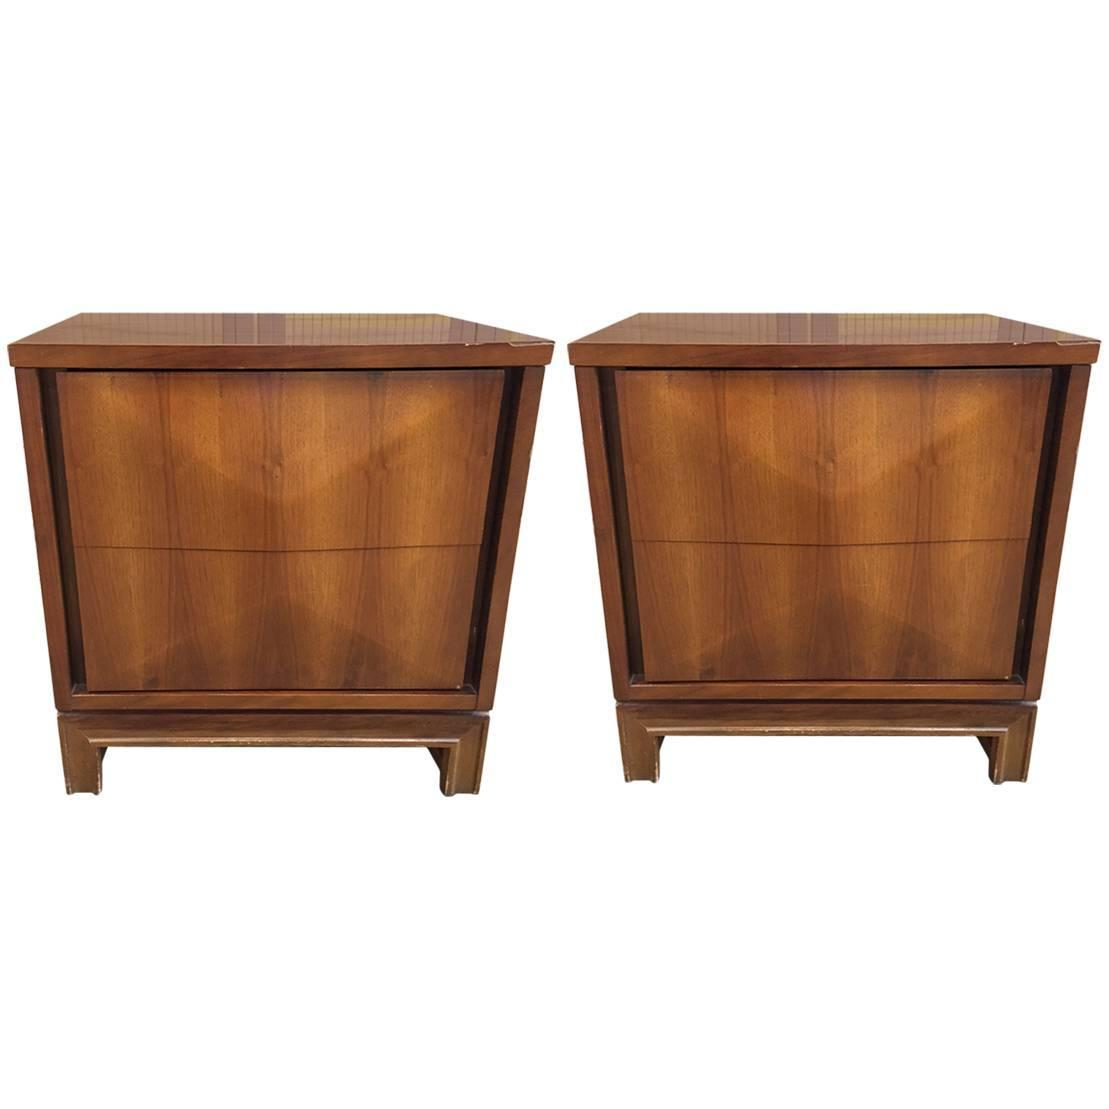 pair of midcentury modern diamond front nightstands for sale at 1stdibs